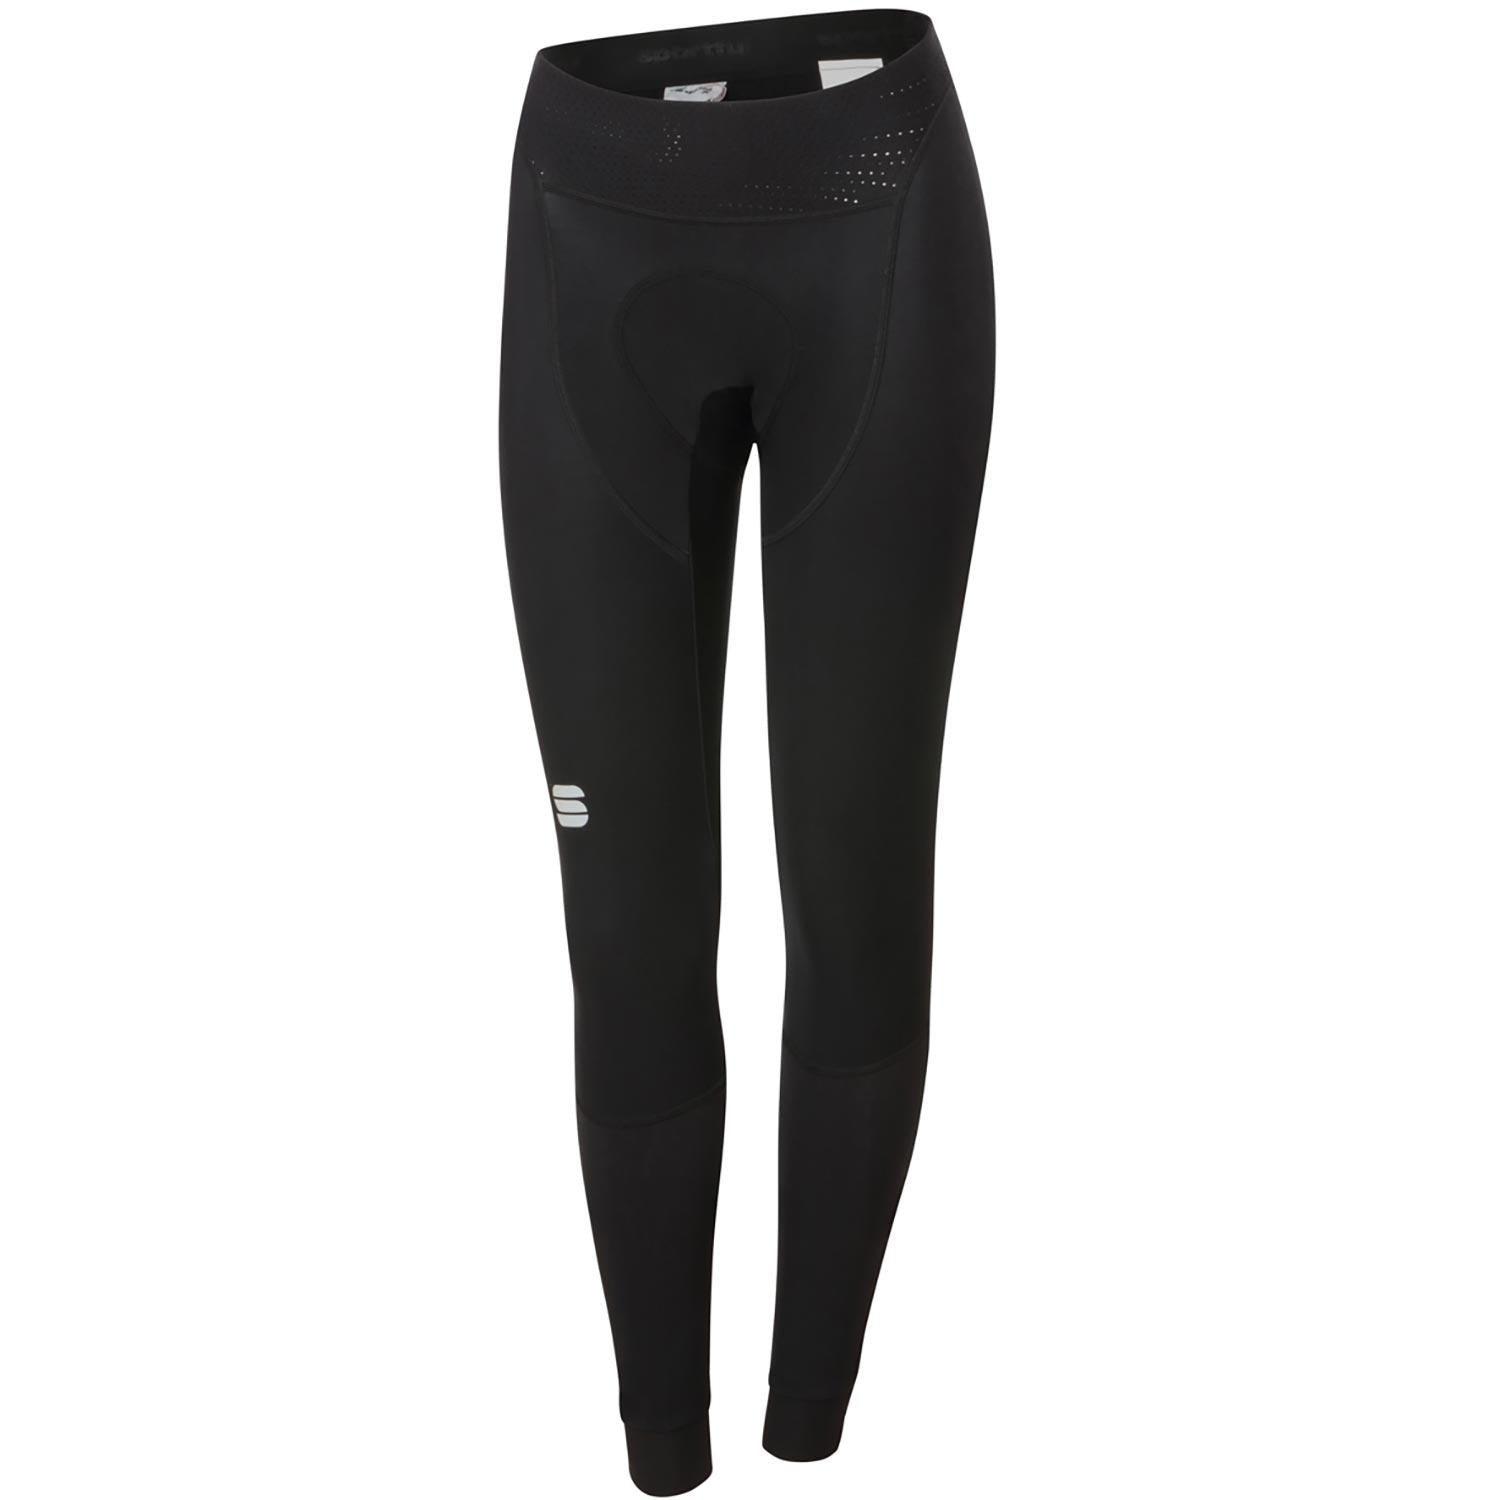 Sportful-Sportful Total Comfort Women's Tights-Black-XS-SF205310021-saddleback-elite-performance-cycling